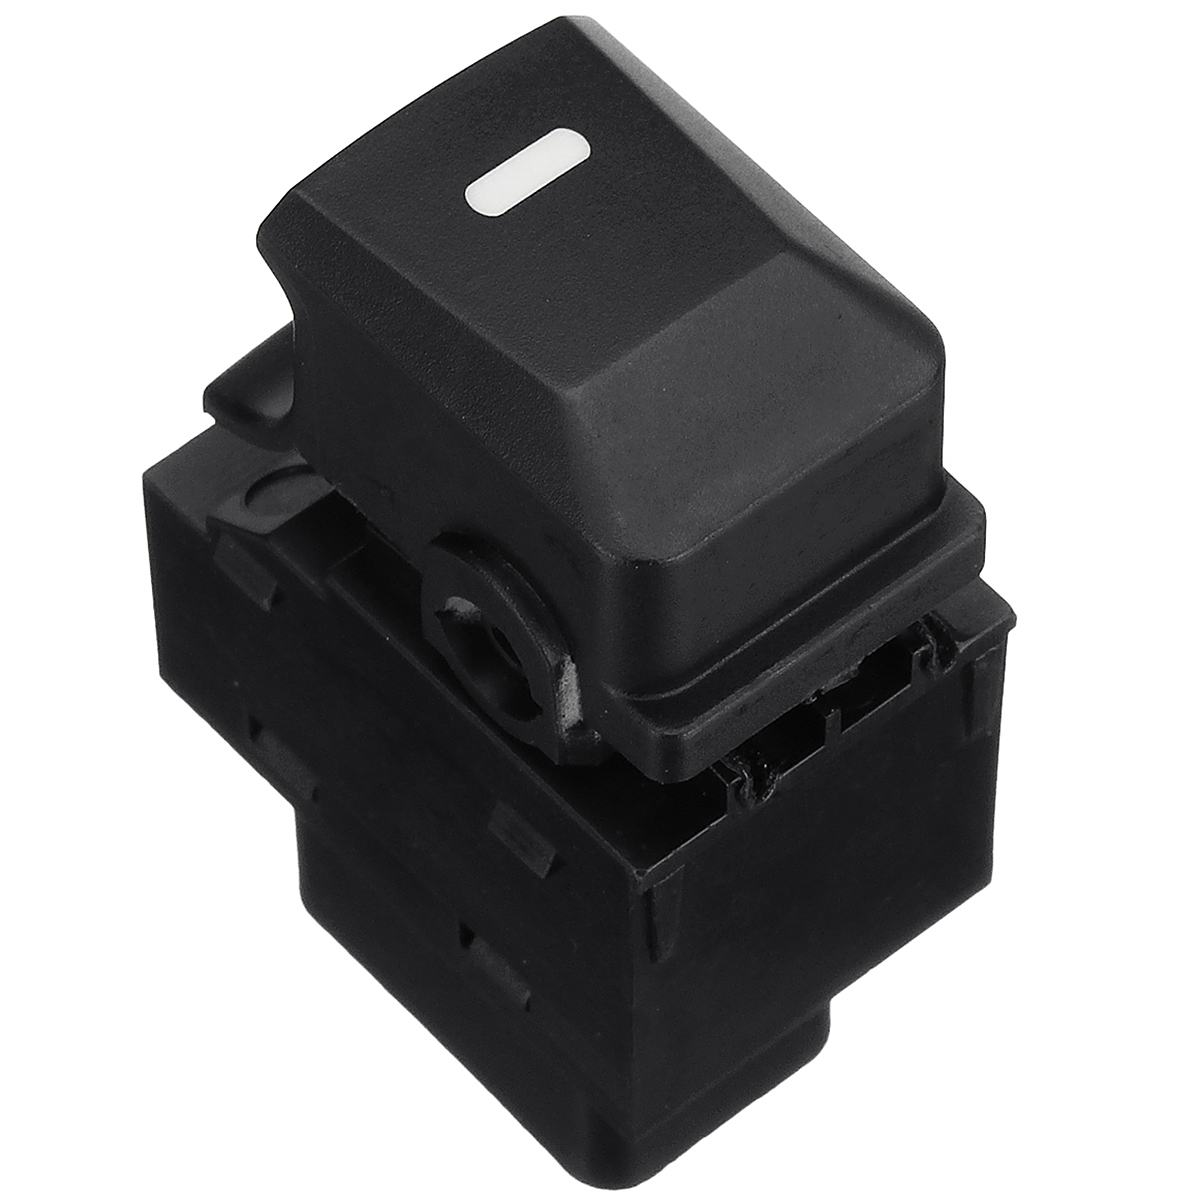 Car Window Control Switch Window Lifter Switches for Kia Sportage Door 93575-1H000 369510-1000 935751H000(China)